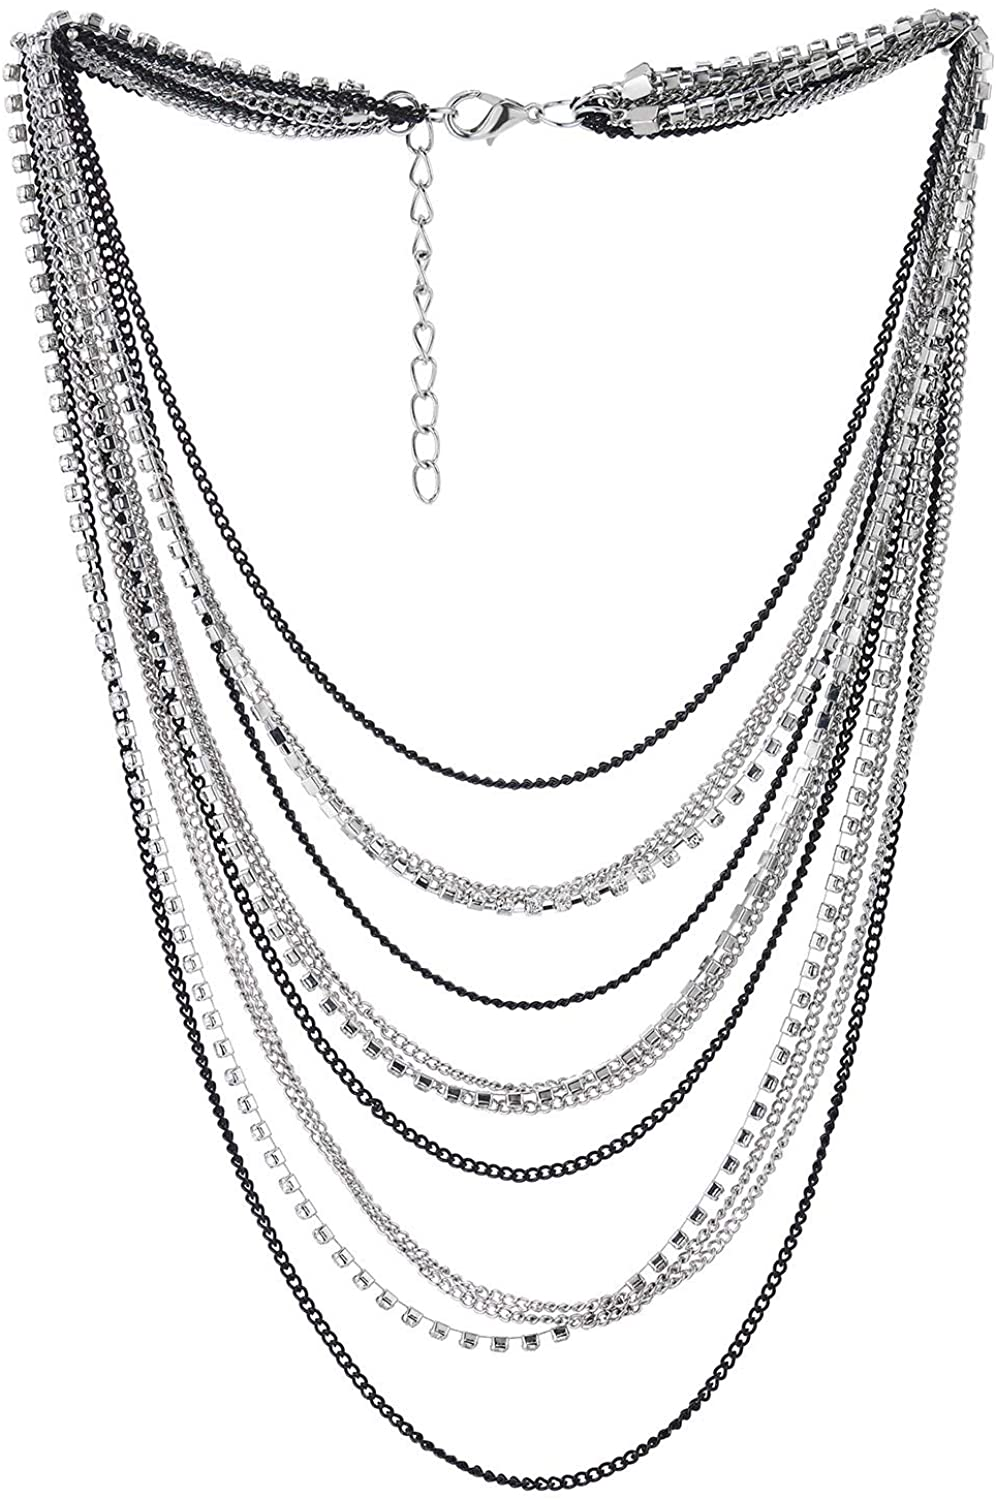 COOLSTEELANDBEYOND Waterfall Multi-Strand Chains Statement Collar Necklace with Rhinestones Chains, Dress